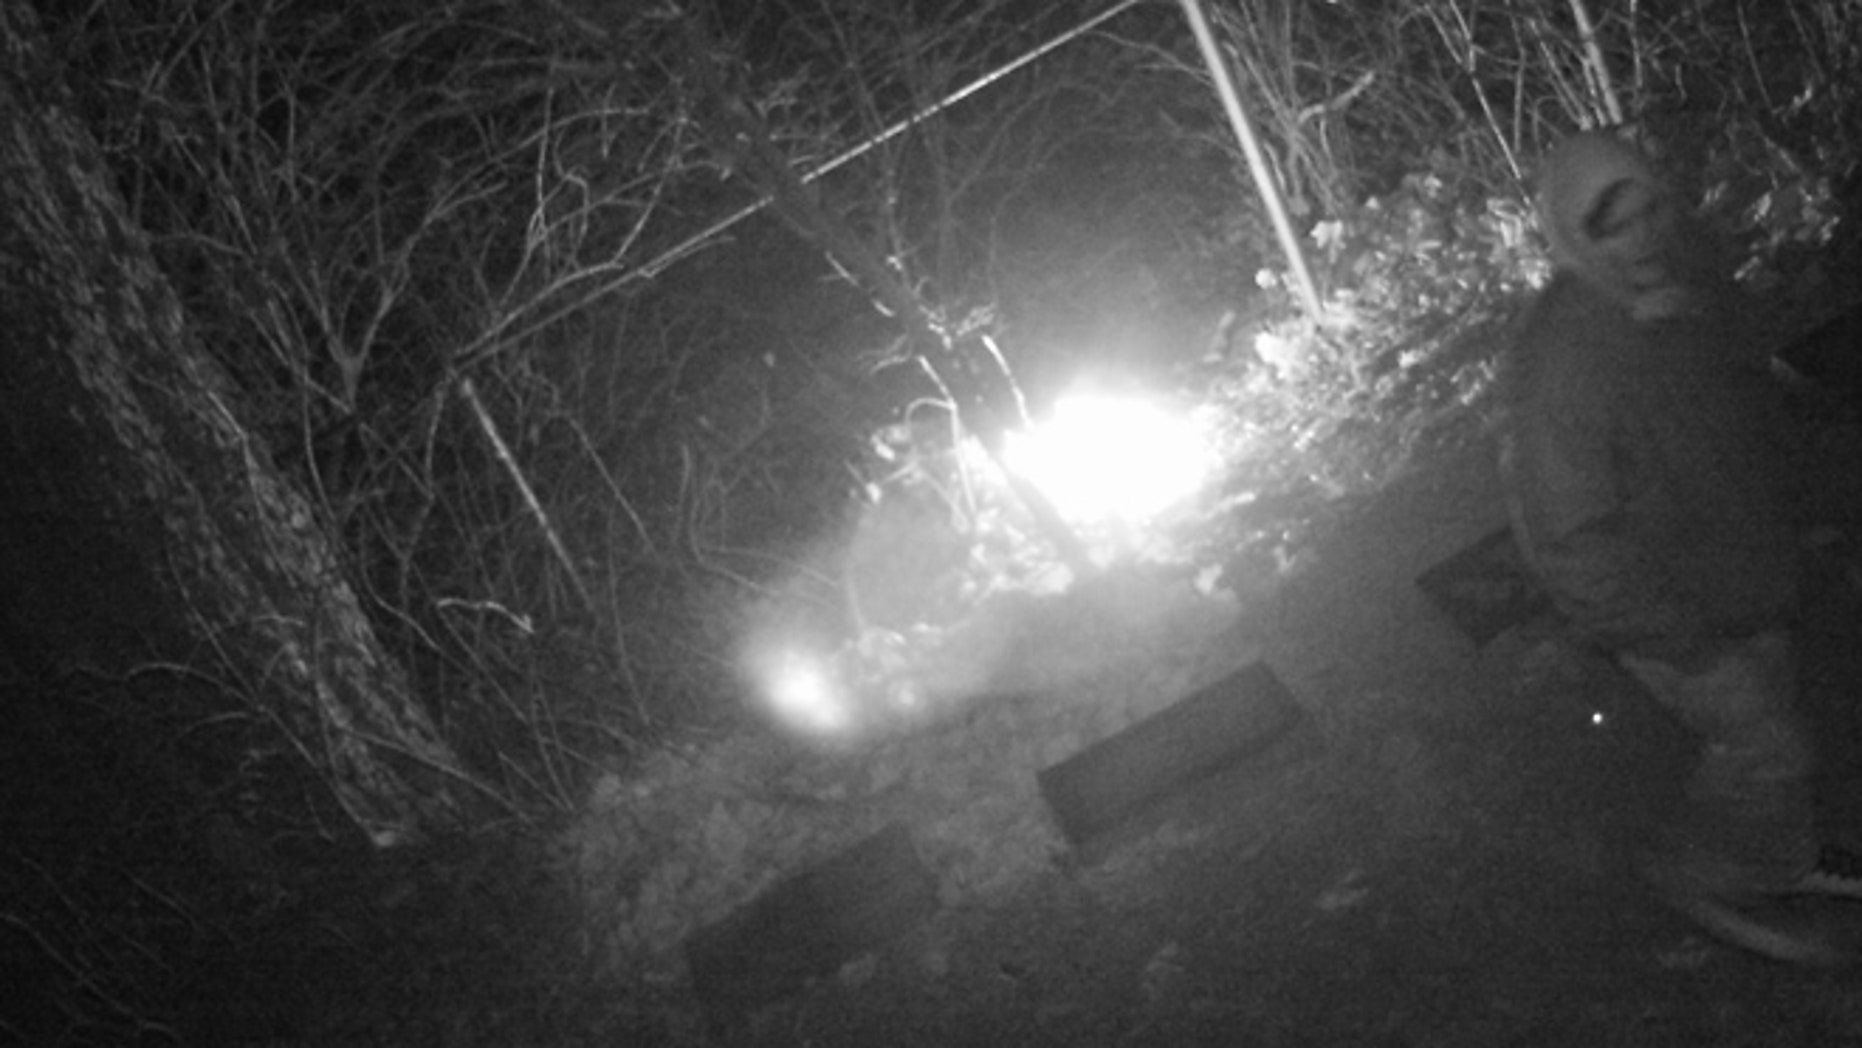 Surveillance images captured a fire at the cemetery.